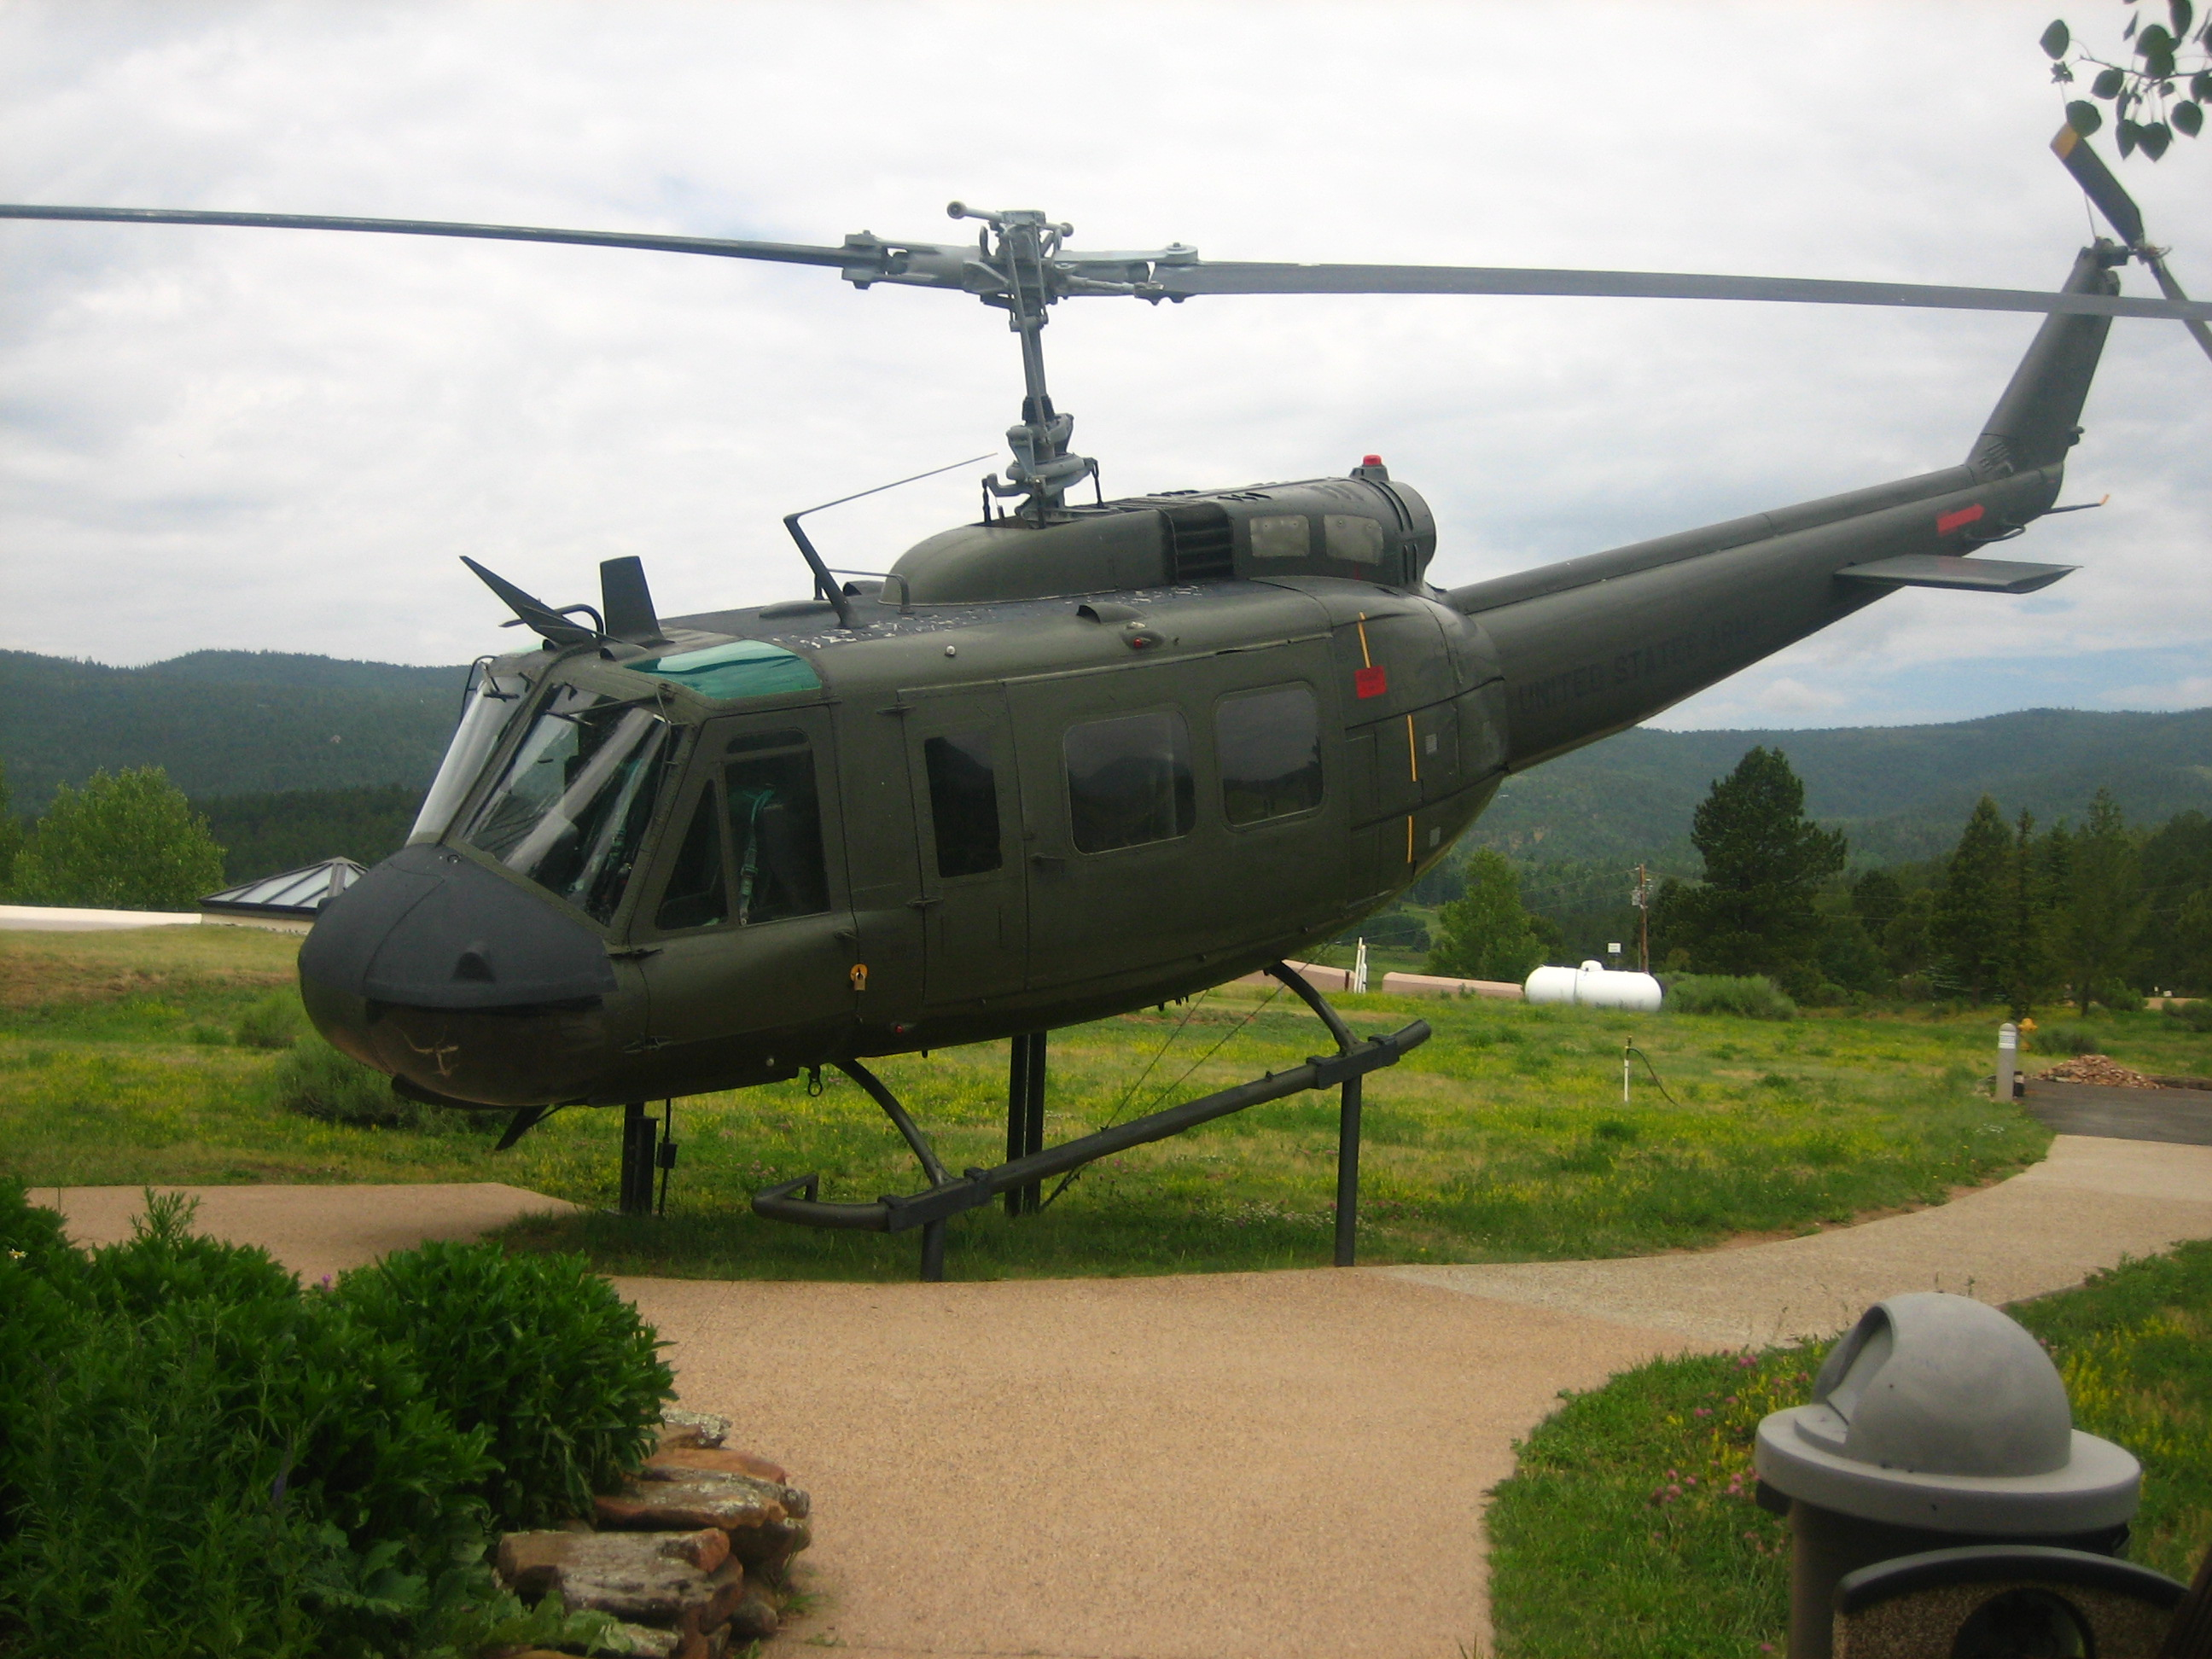 used helicopters for sale uk with File Huey Helicopter Img 0435 on Jerdon's courser furthermore R8217 trakmat moreover Cold War F 104 Starfighter Jet Sale 25k Garden Ornament together with 246 Boeing 747 400 also 215 Boeing 737 400.